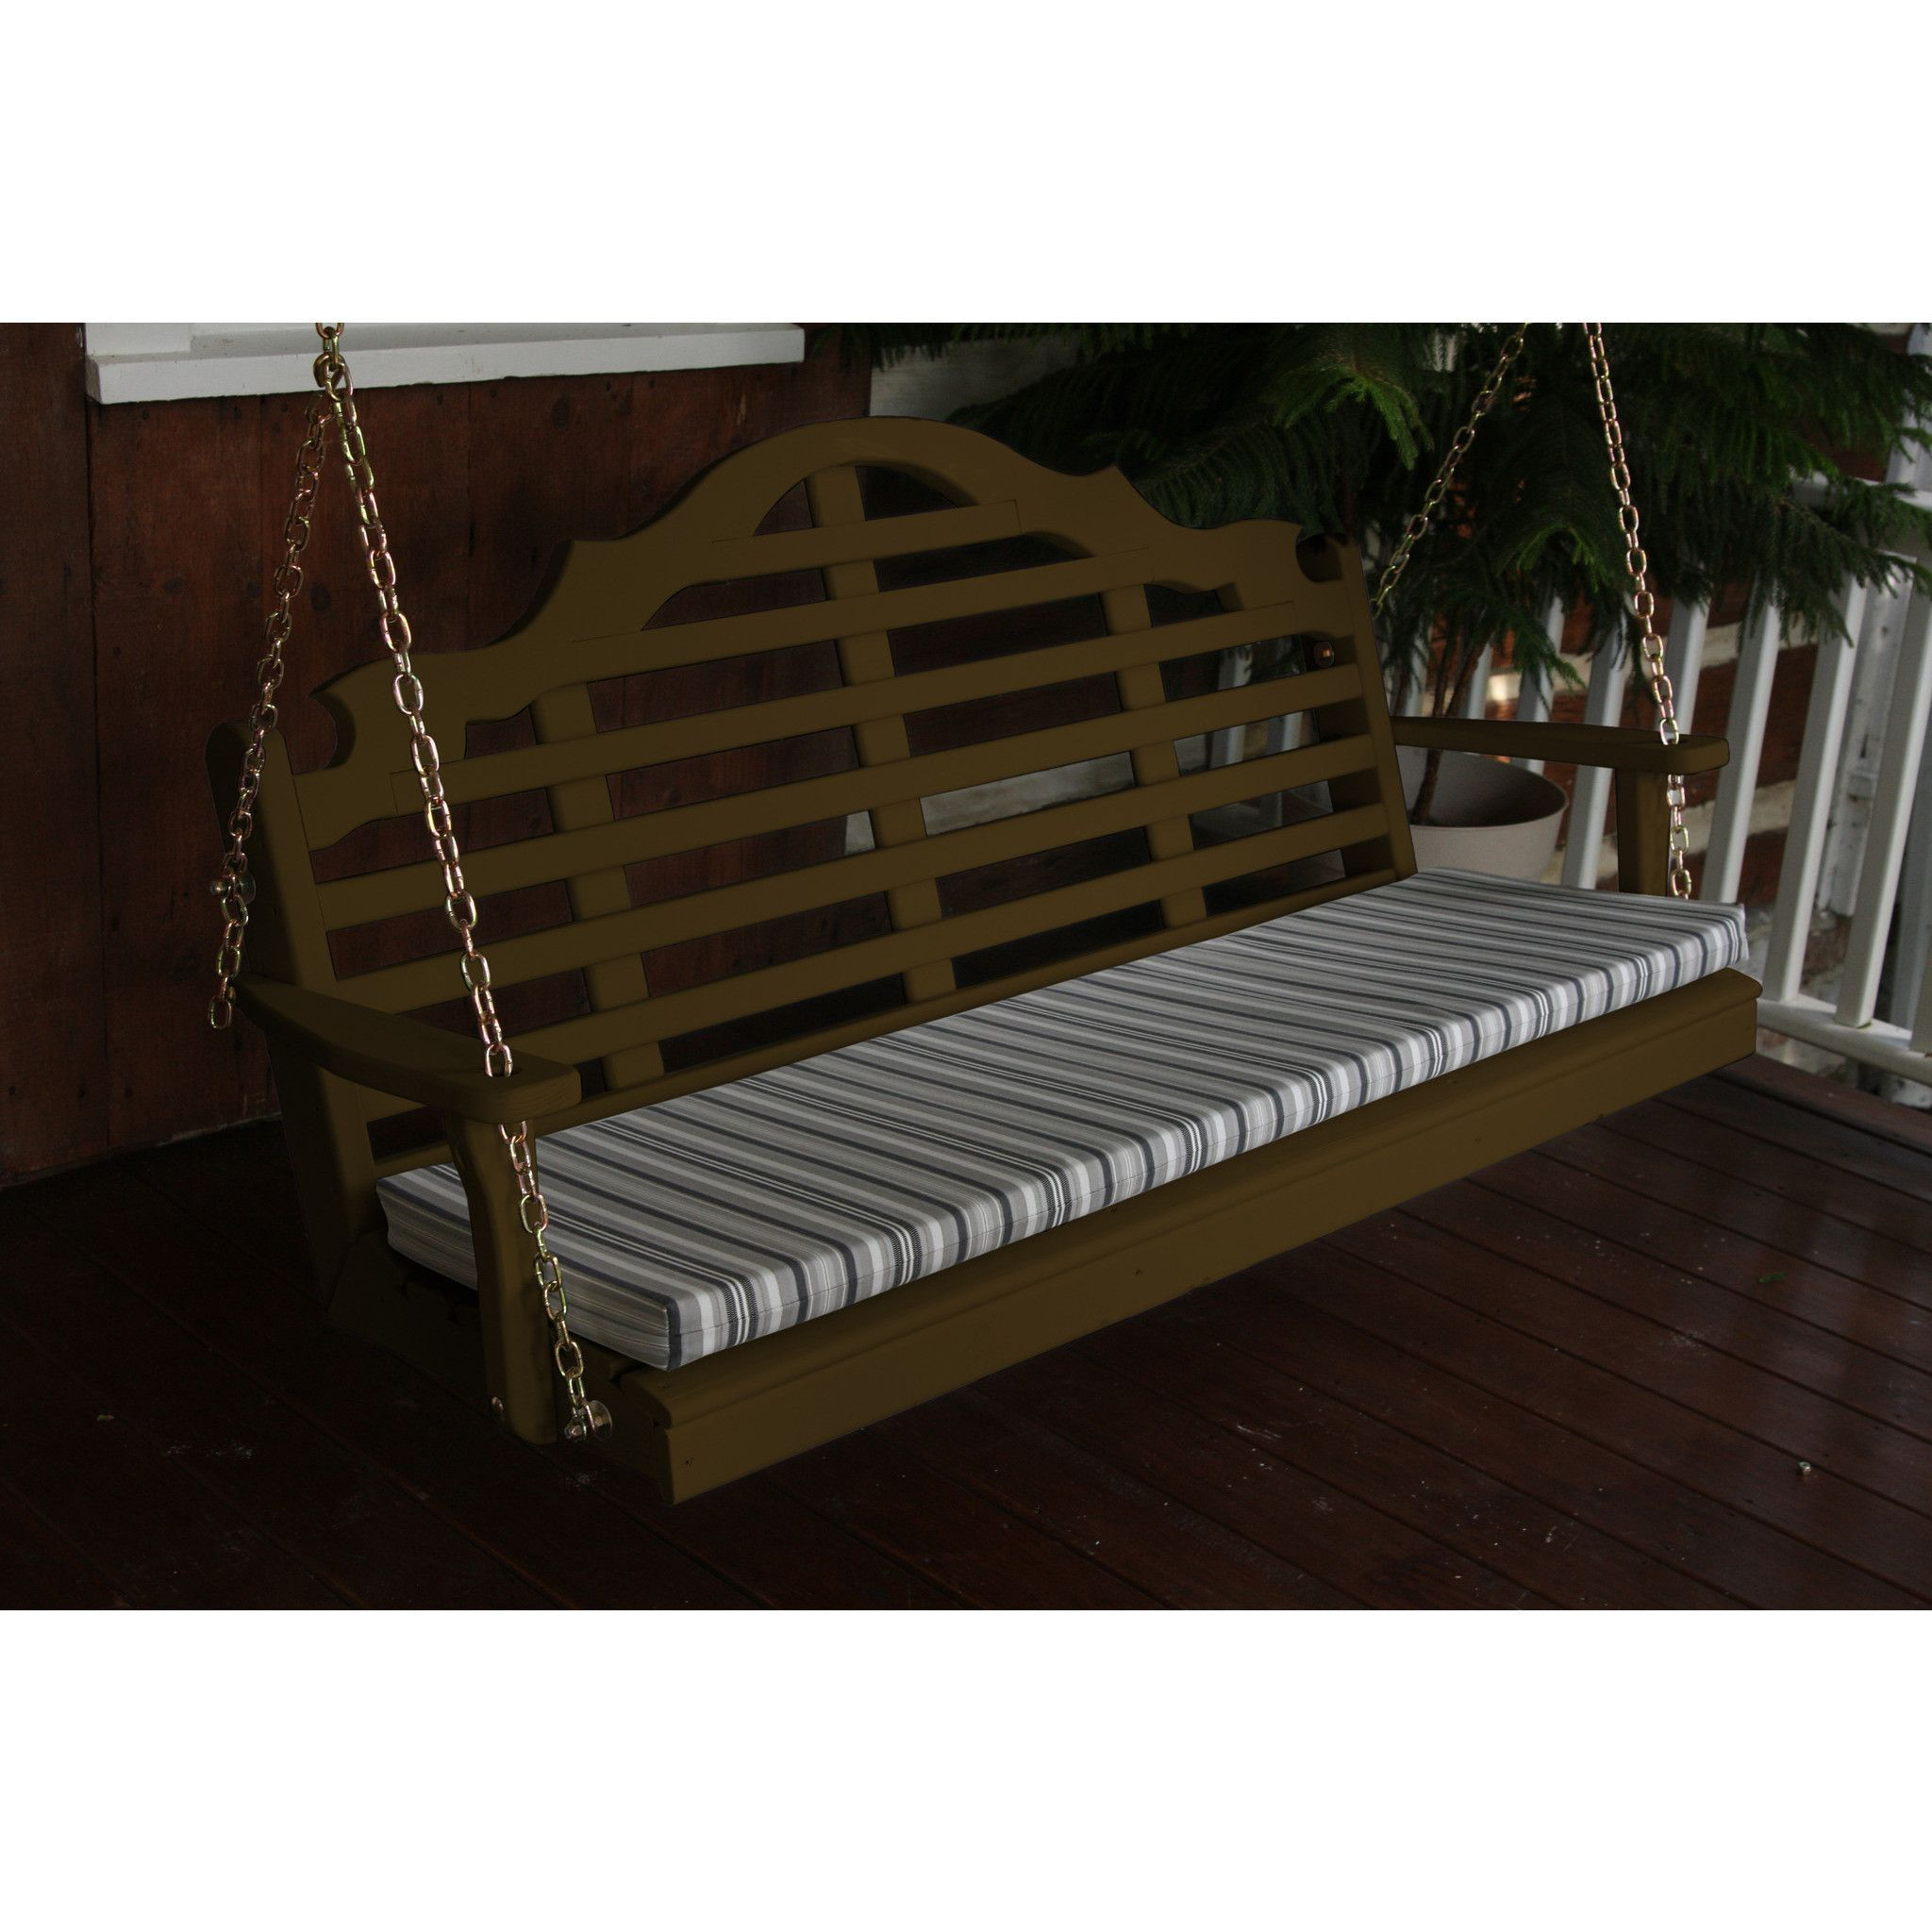 A L Furniture Marlboro Yellow Pine 5ft Porch Swing Ships Free In 5 7 Business Days Porch Swing Porch Swing Bed Outdoor Bed Swing